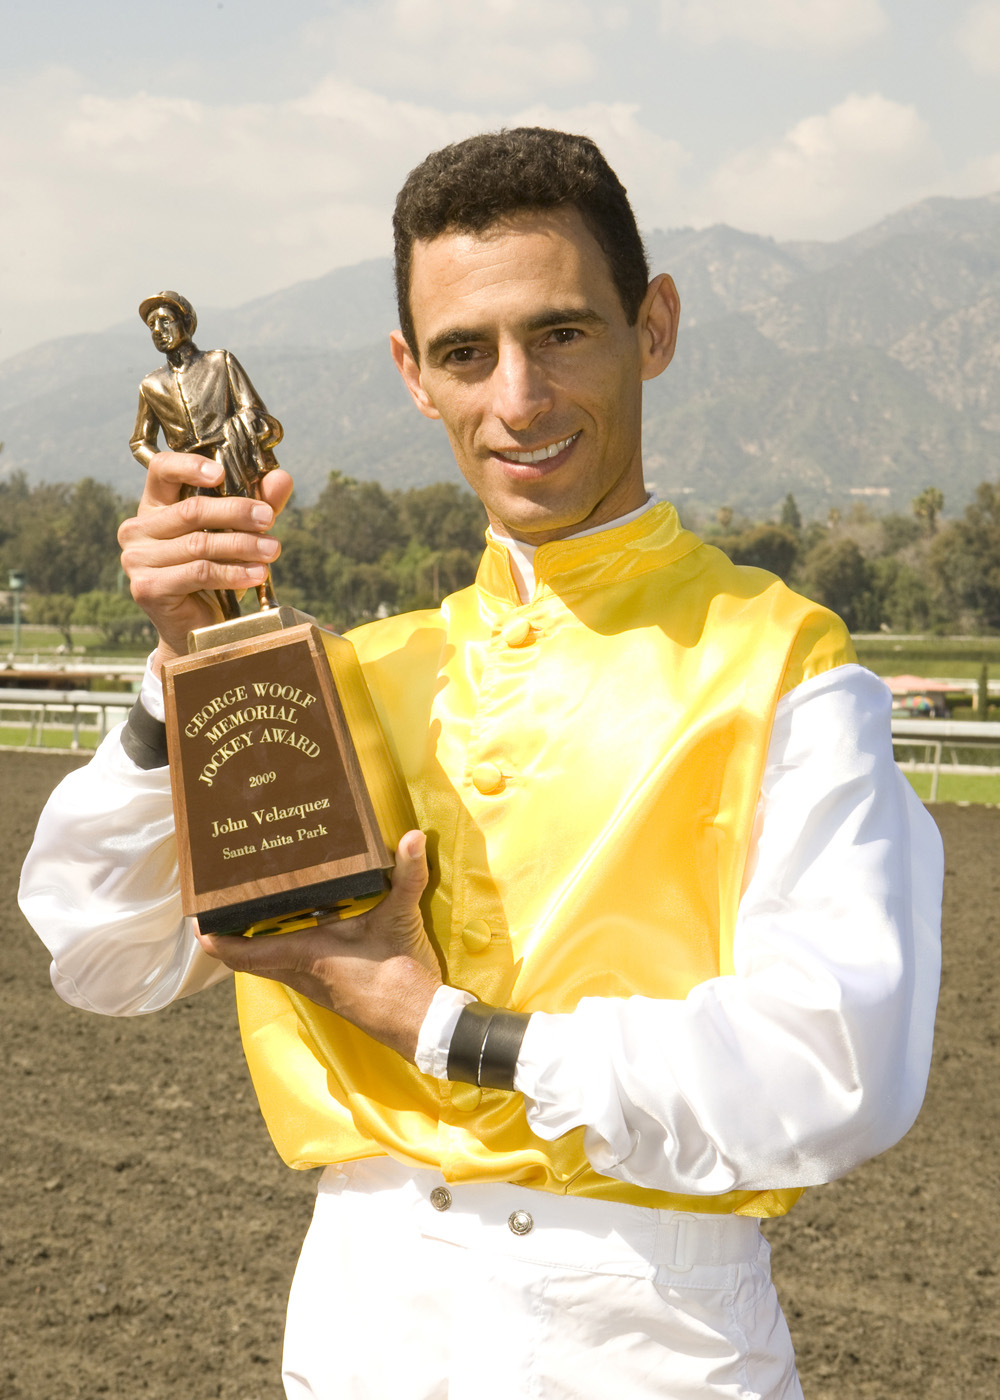 John Velazquez with the George Woolf Memorial Jockey Award in 2009 (Benoit Photo)